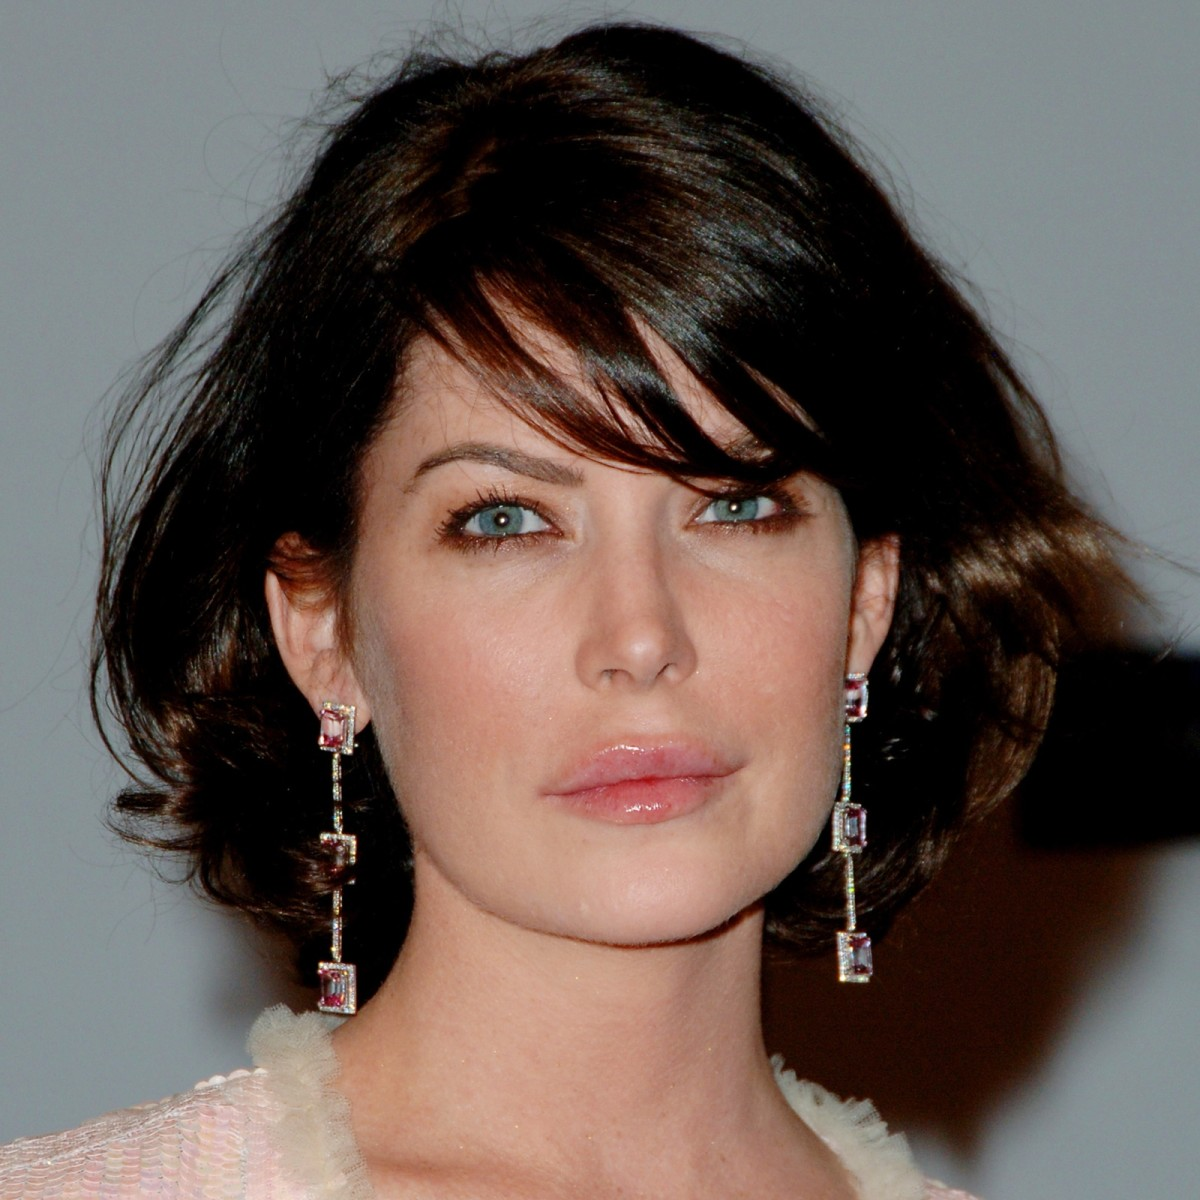 Lara Flynn Boyle naked (76 foto and video), Tits, Leaked, Twitter, bra 2020